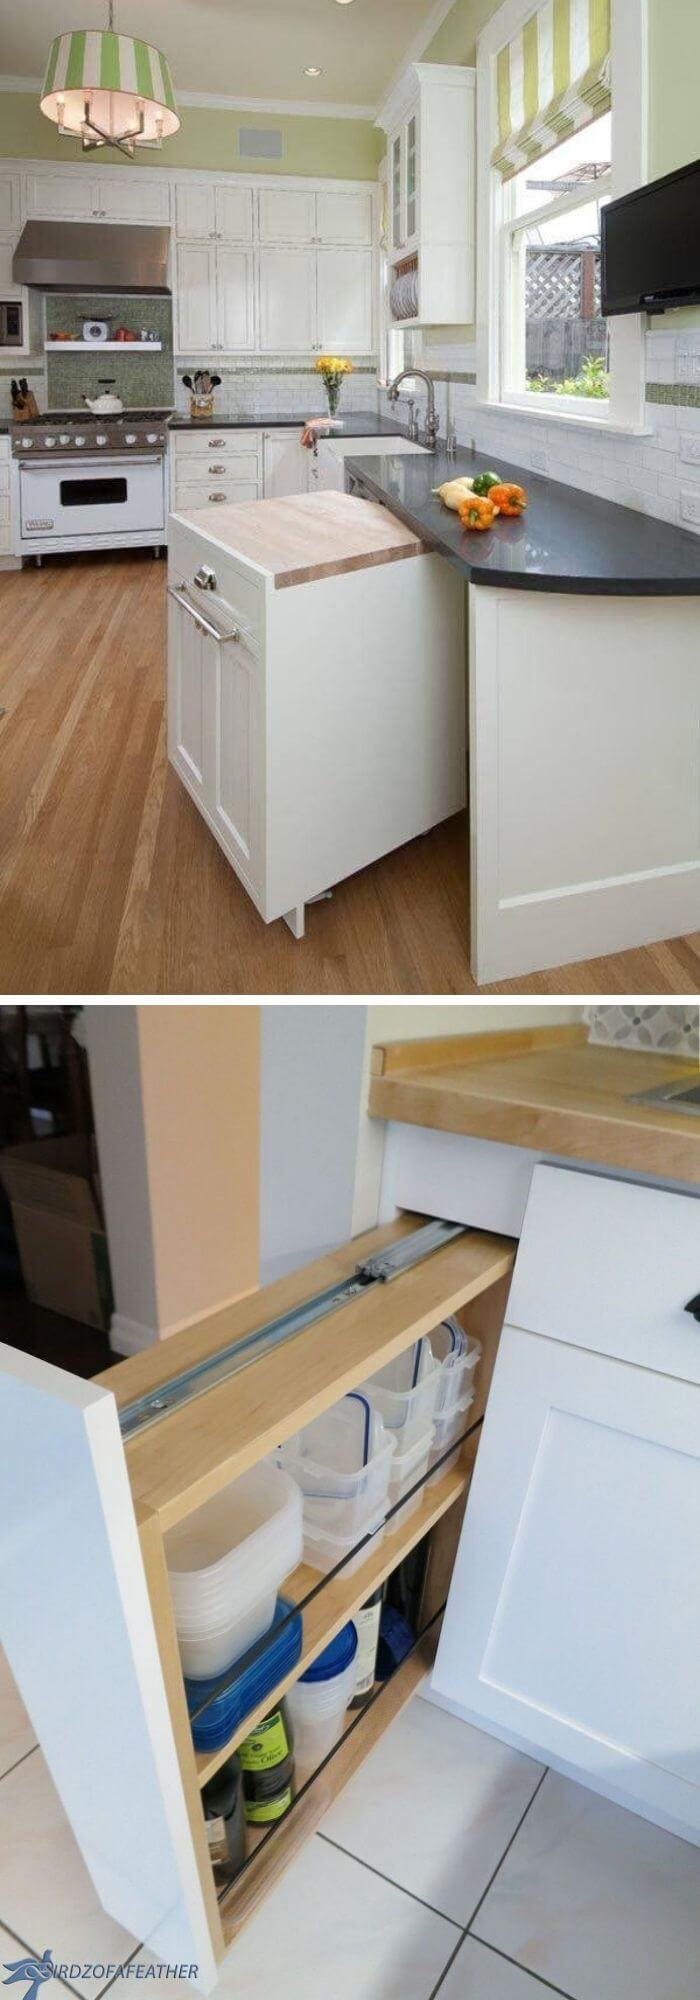 Build a pull-out cabinet to shift anywhere whenever you want